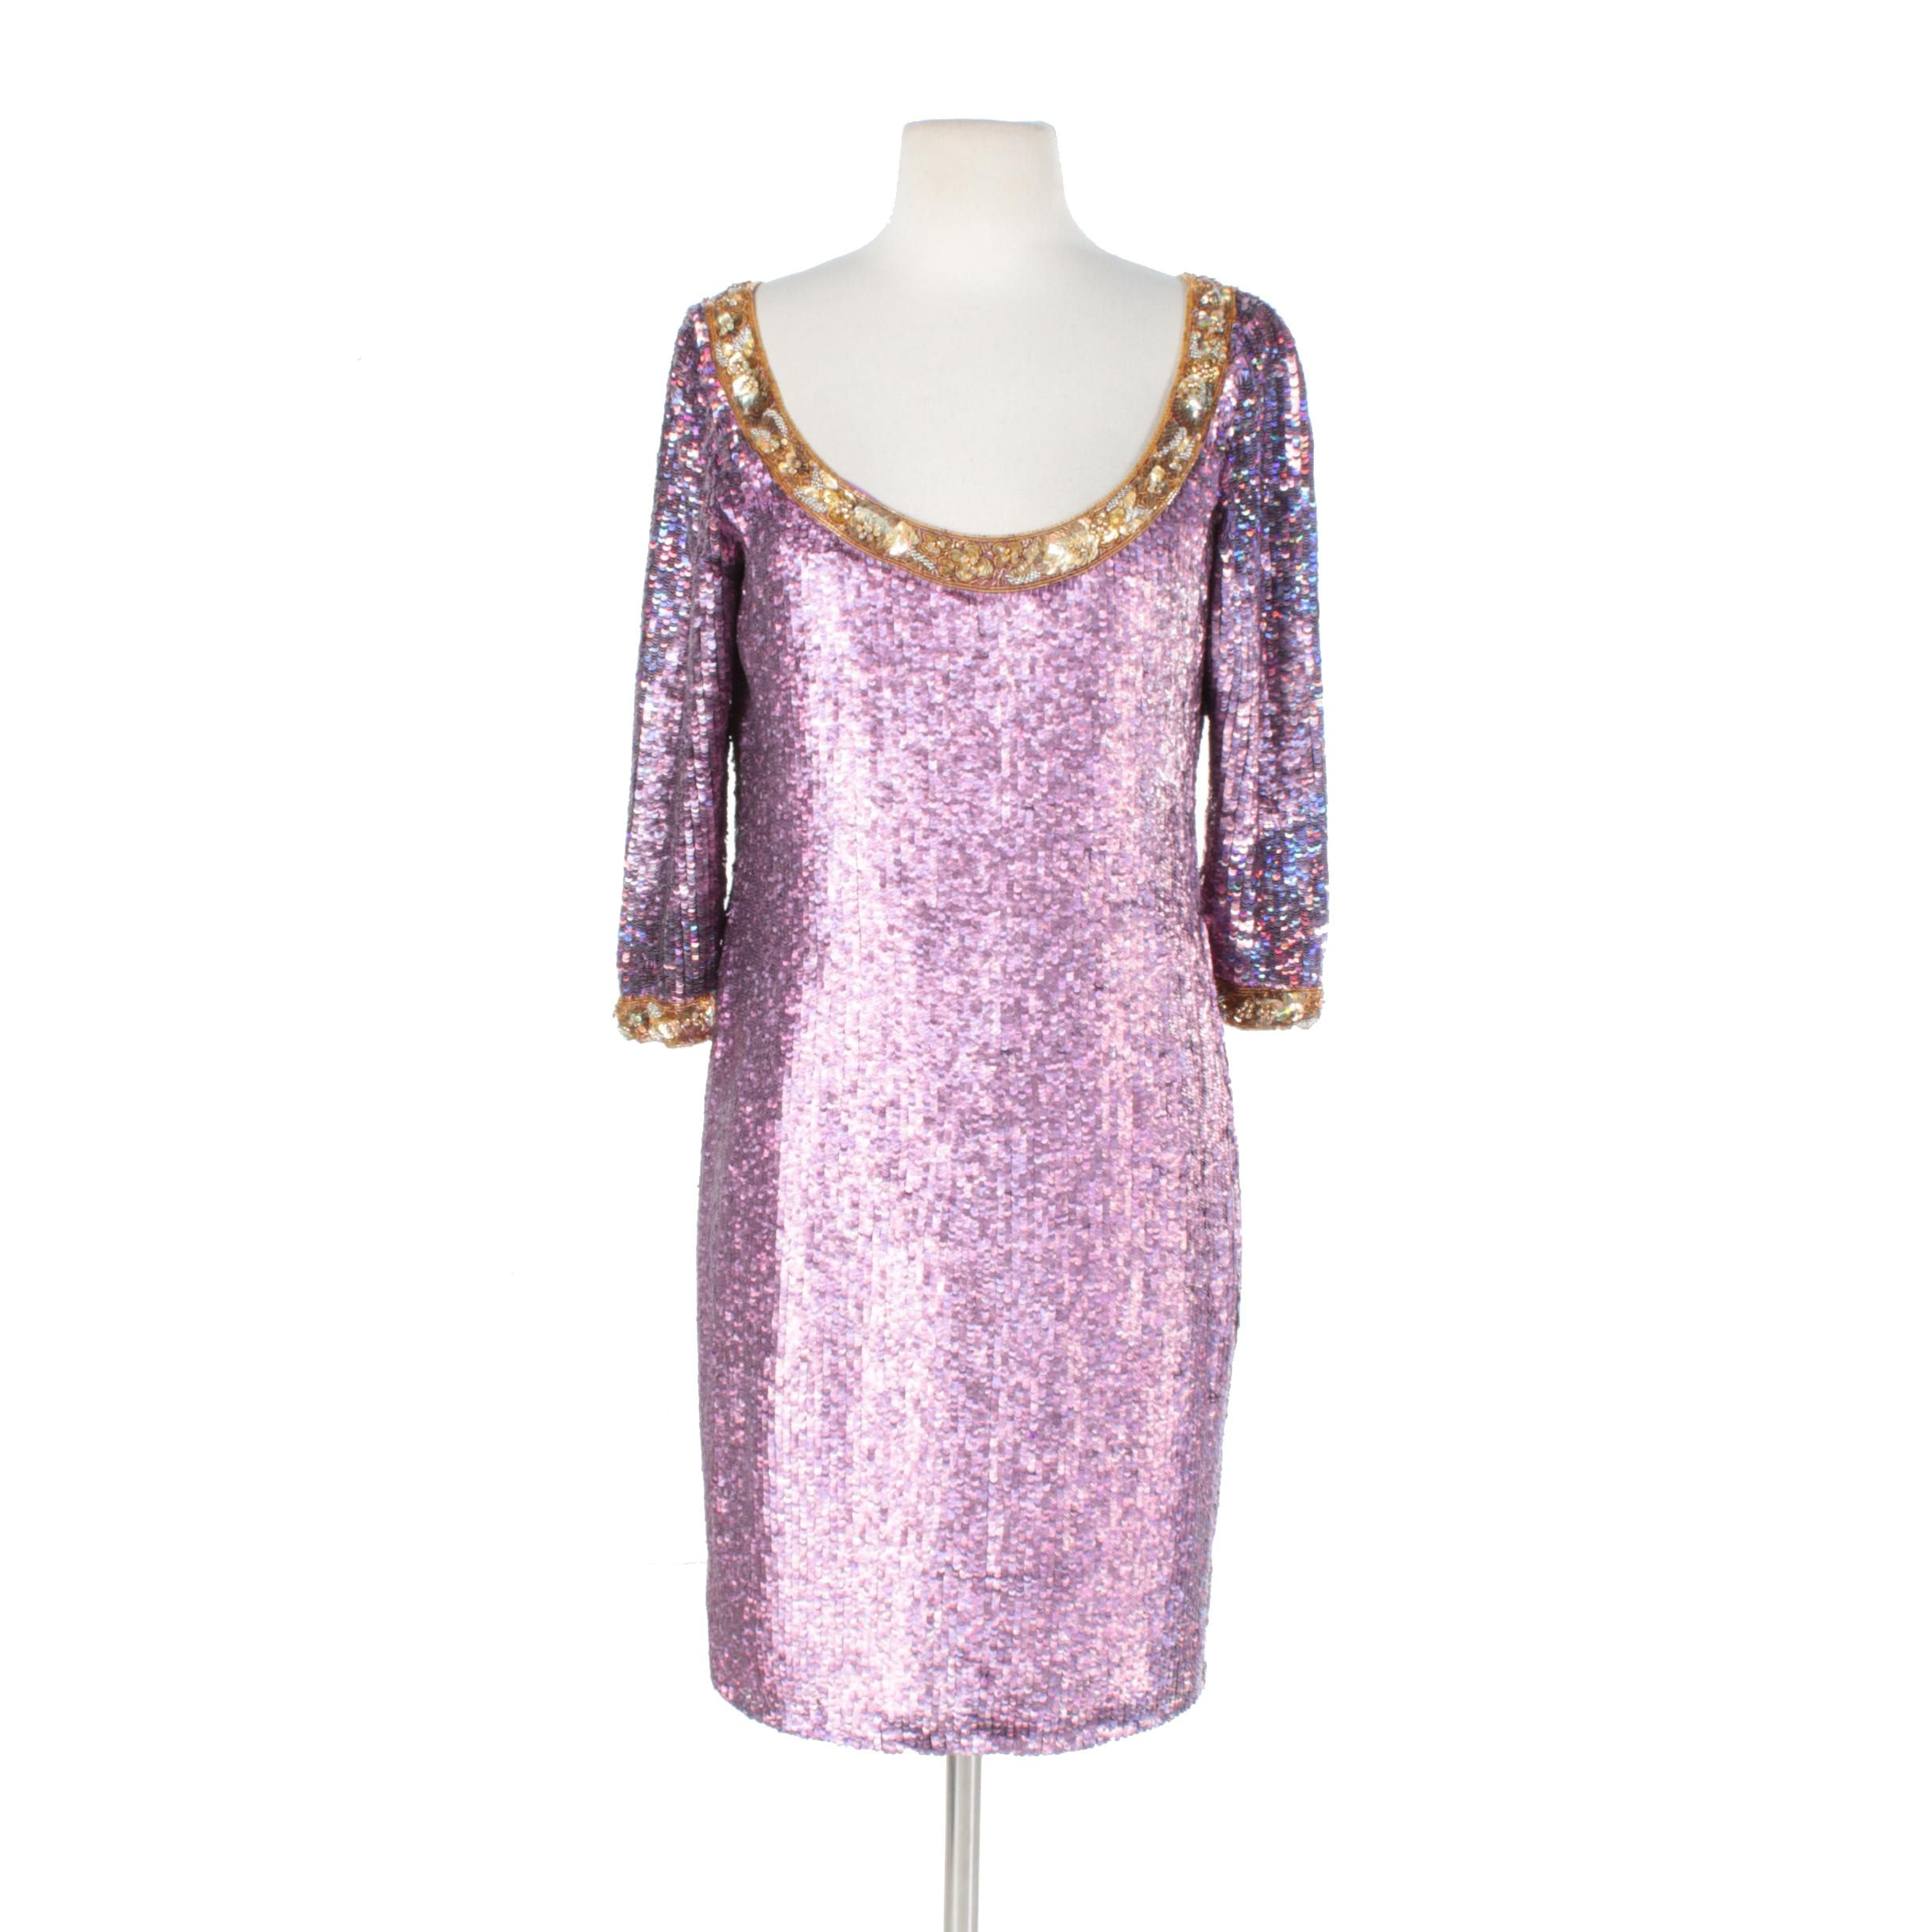 Naeem Khan Riazee Pink and Gold Fully Sequin Cocktail Dress